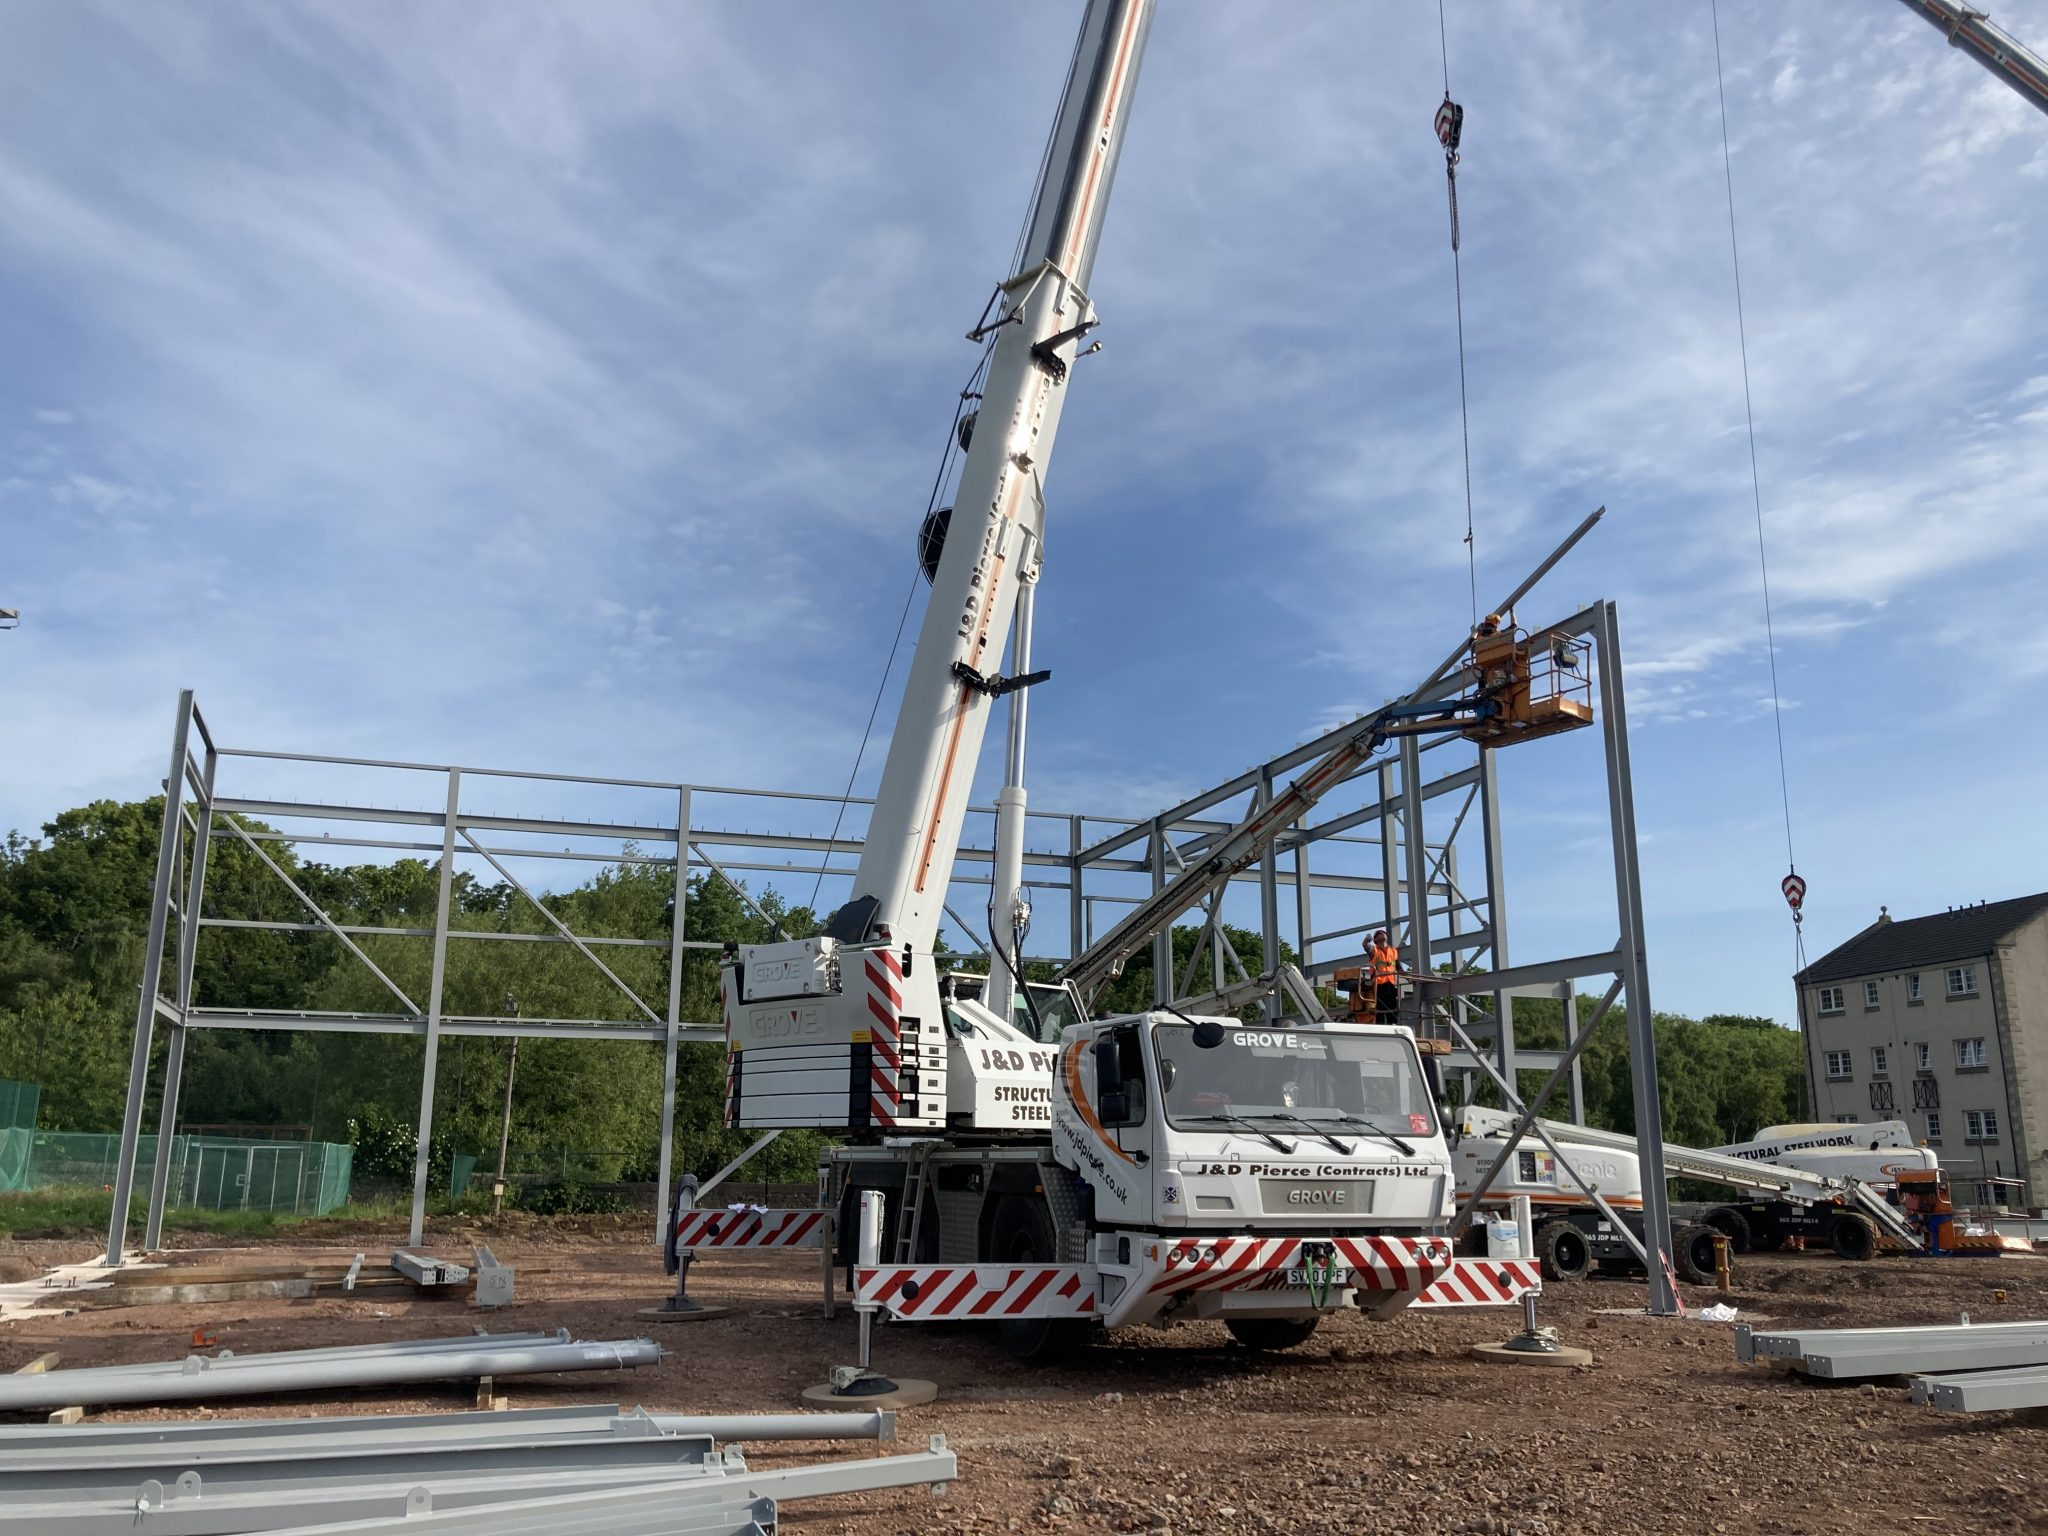 Bangholm Outdoor Centre First Steel Erected